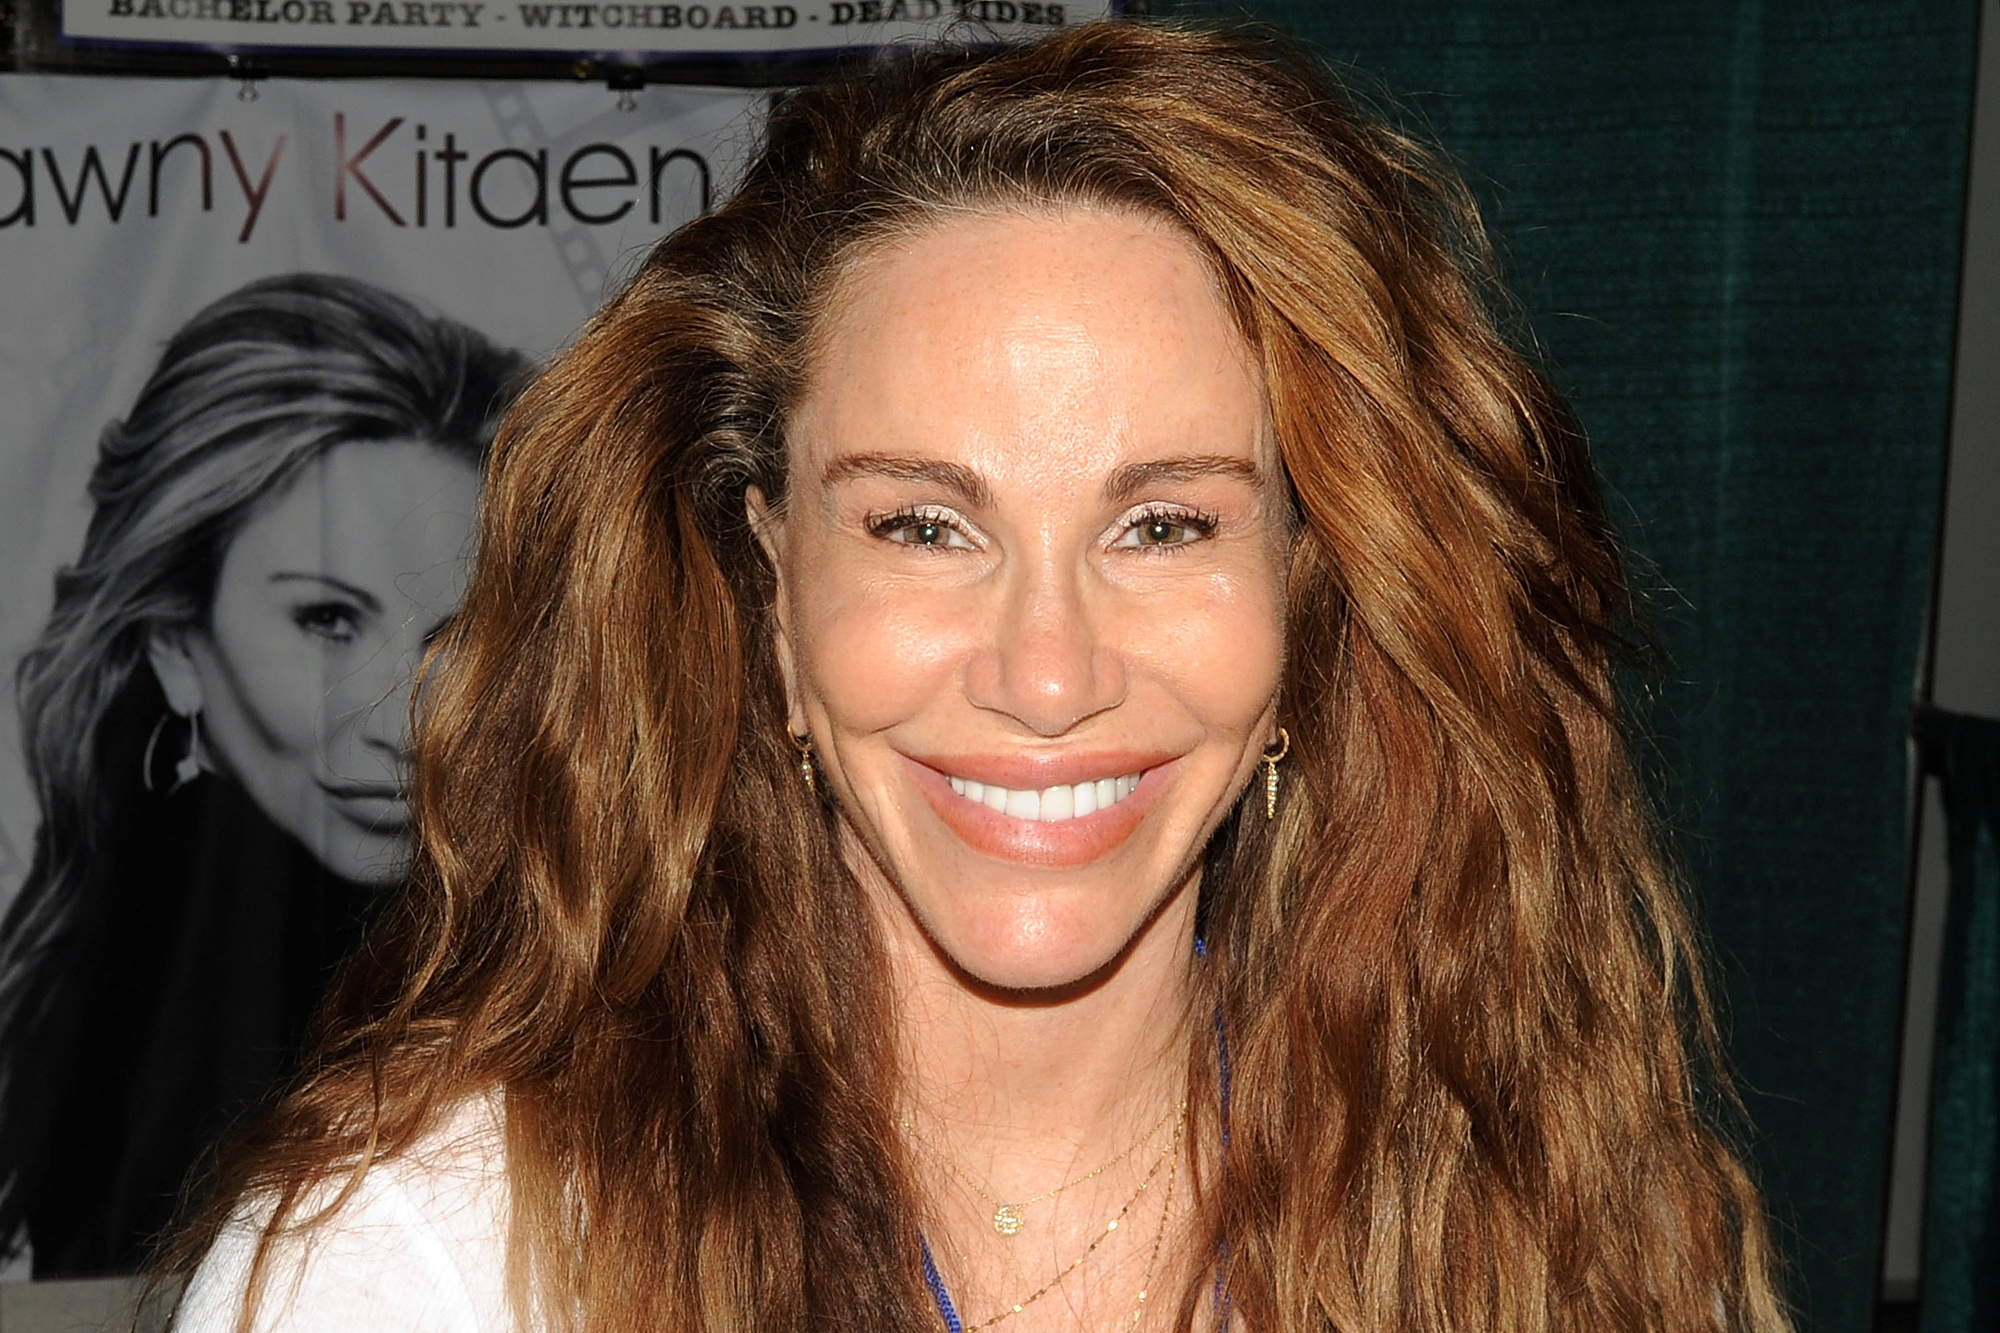 Tawny Kitaen Cause Of Death Revealed After 5 Months How Did 80s Actress Die?